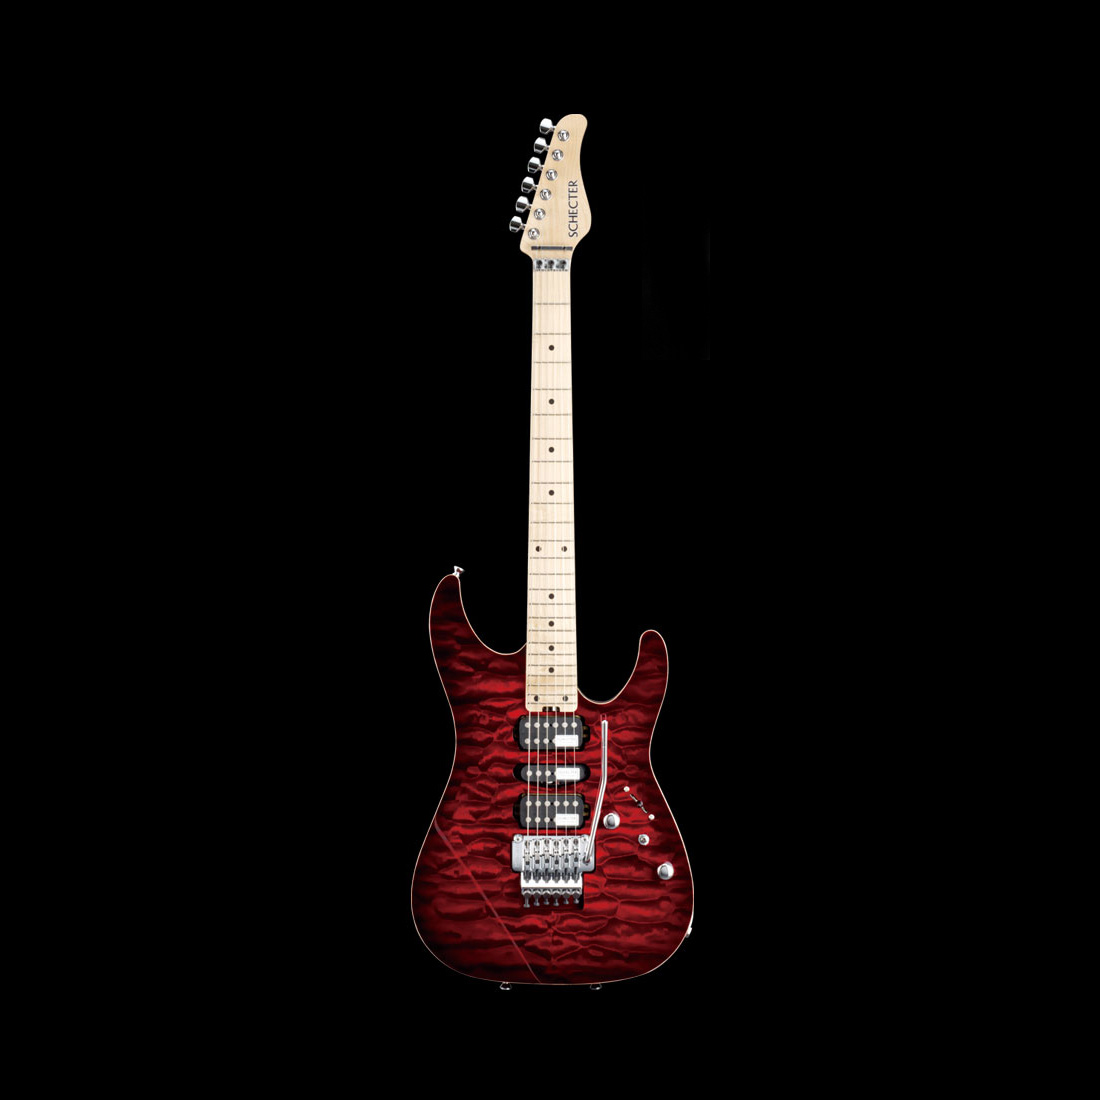 Schecter / NV-DX-24-AS-M Red Sunburst シェクター エレキギター 【お取り寄せ商品/納期別途ご案内】